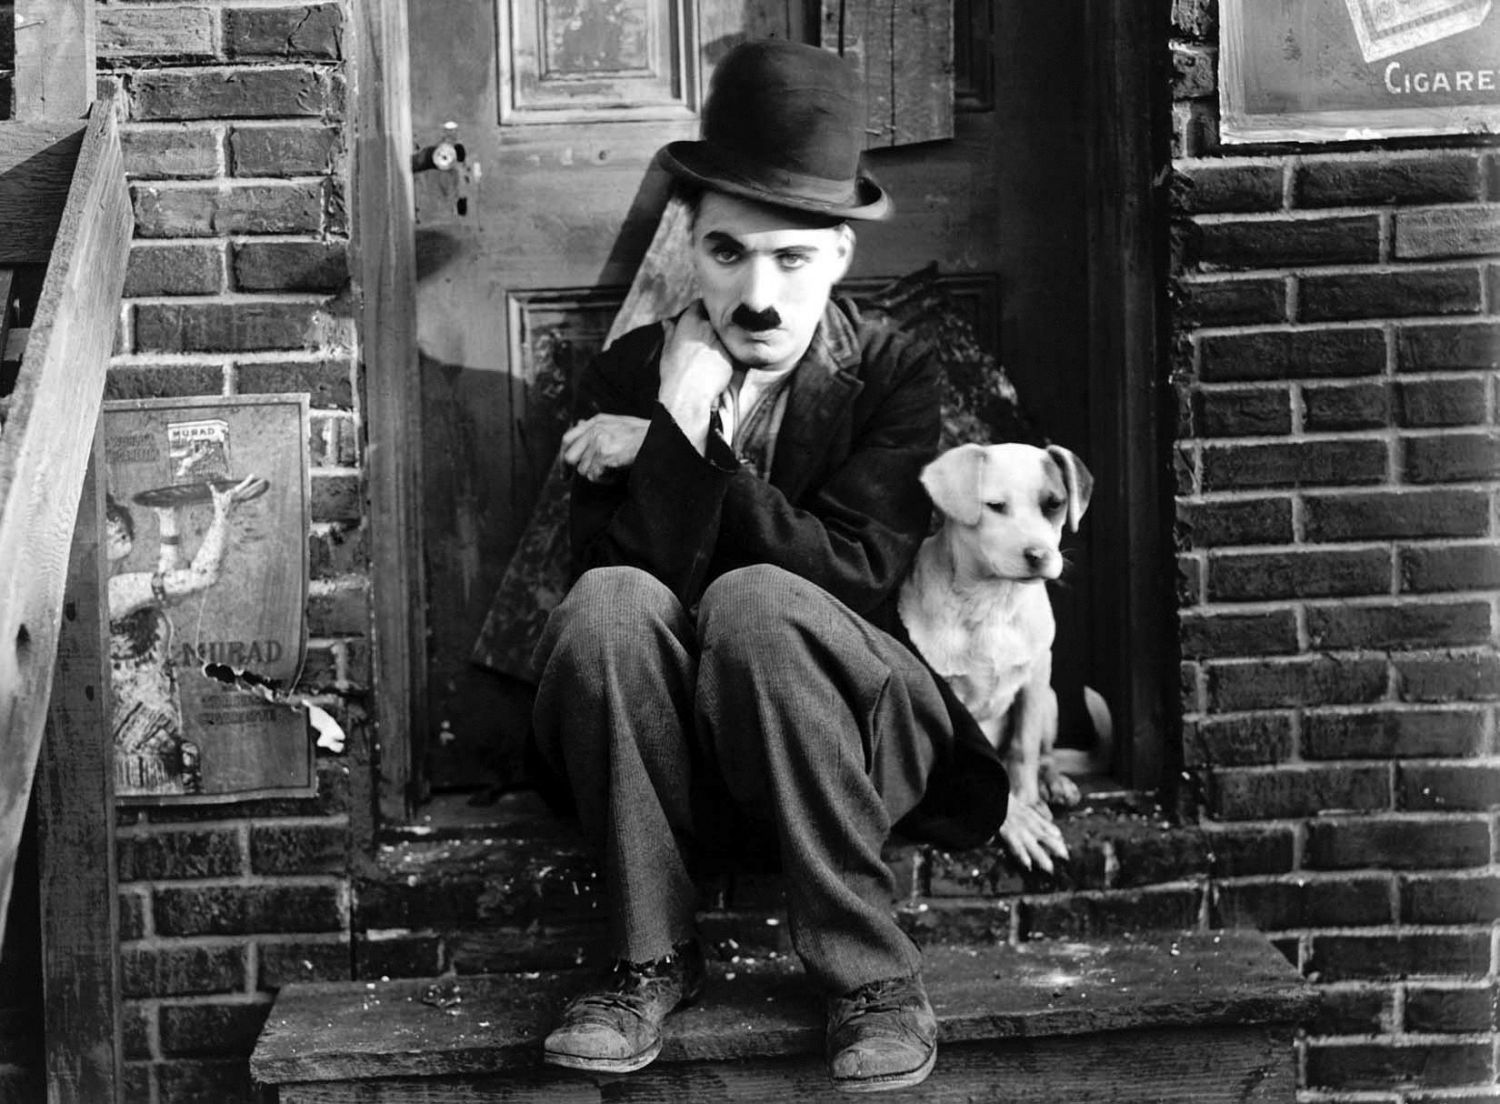 Charlie chaplin wallpapers wallpaper cave free wallpapers charlie chaplin wallpapers wallpaper cave thecheapjerseys Images